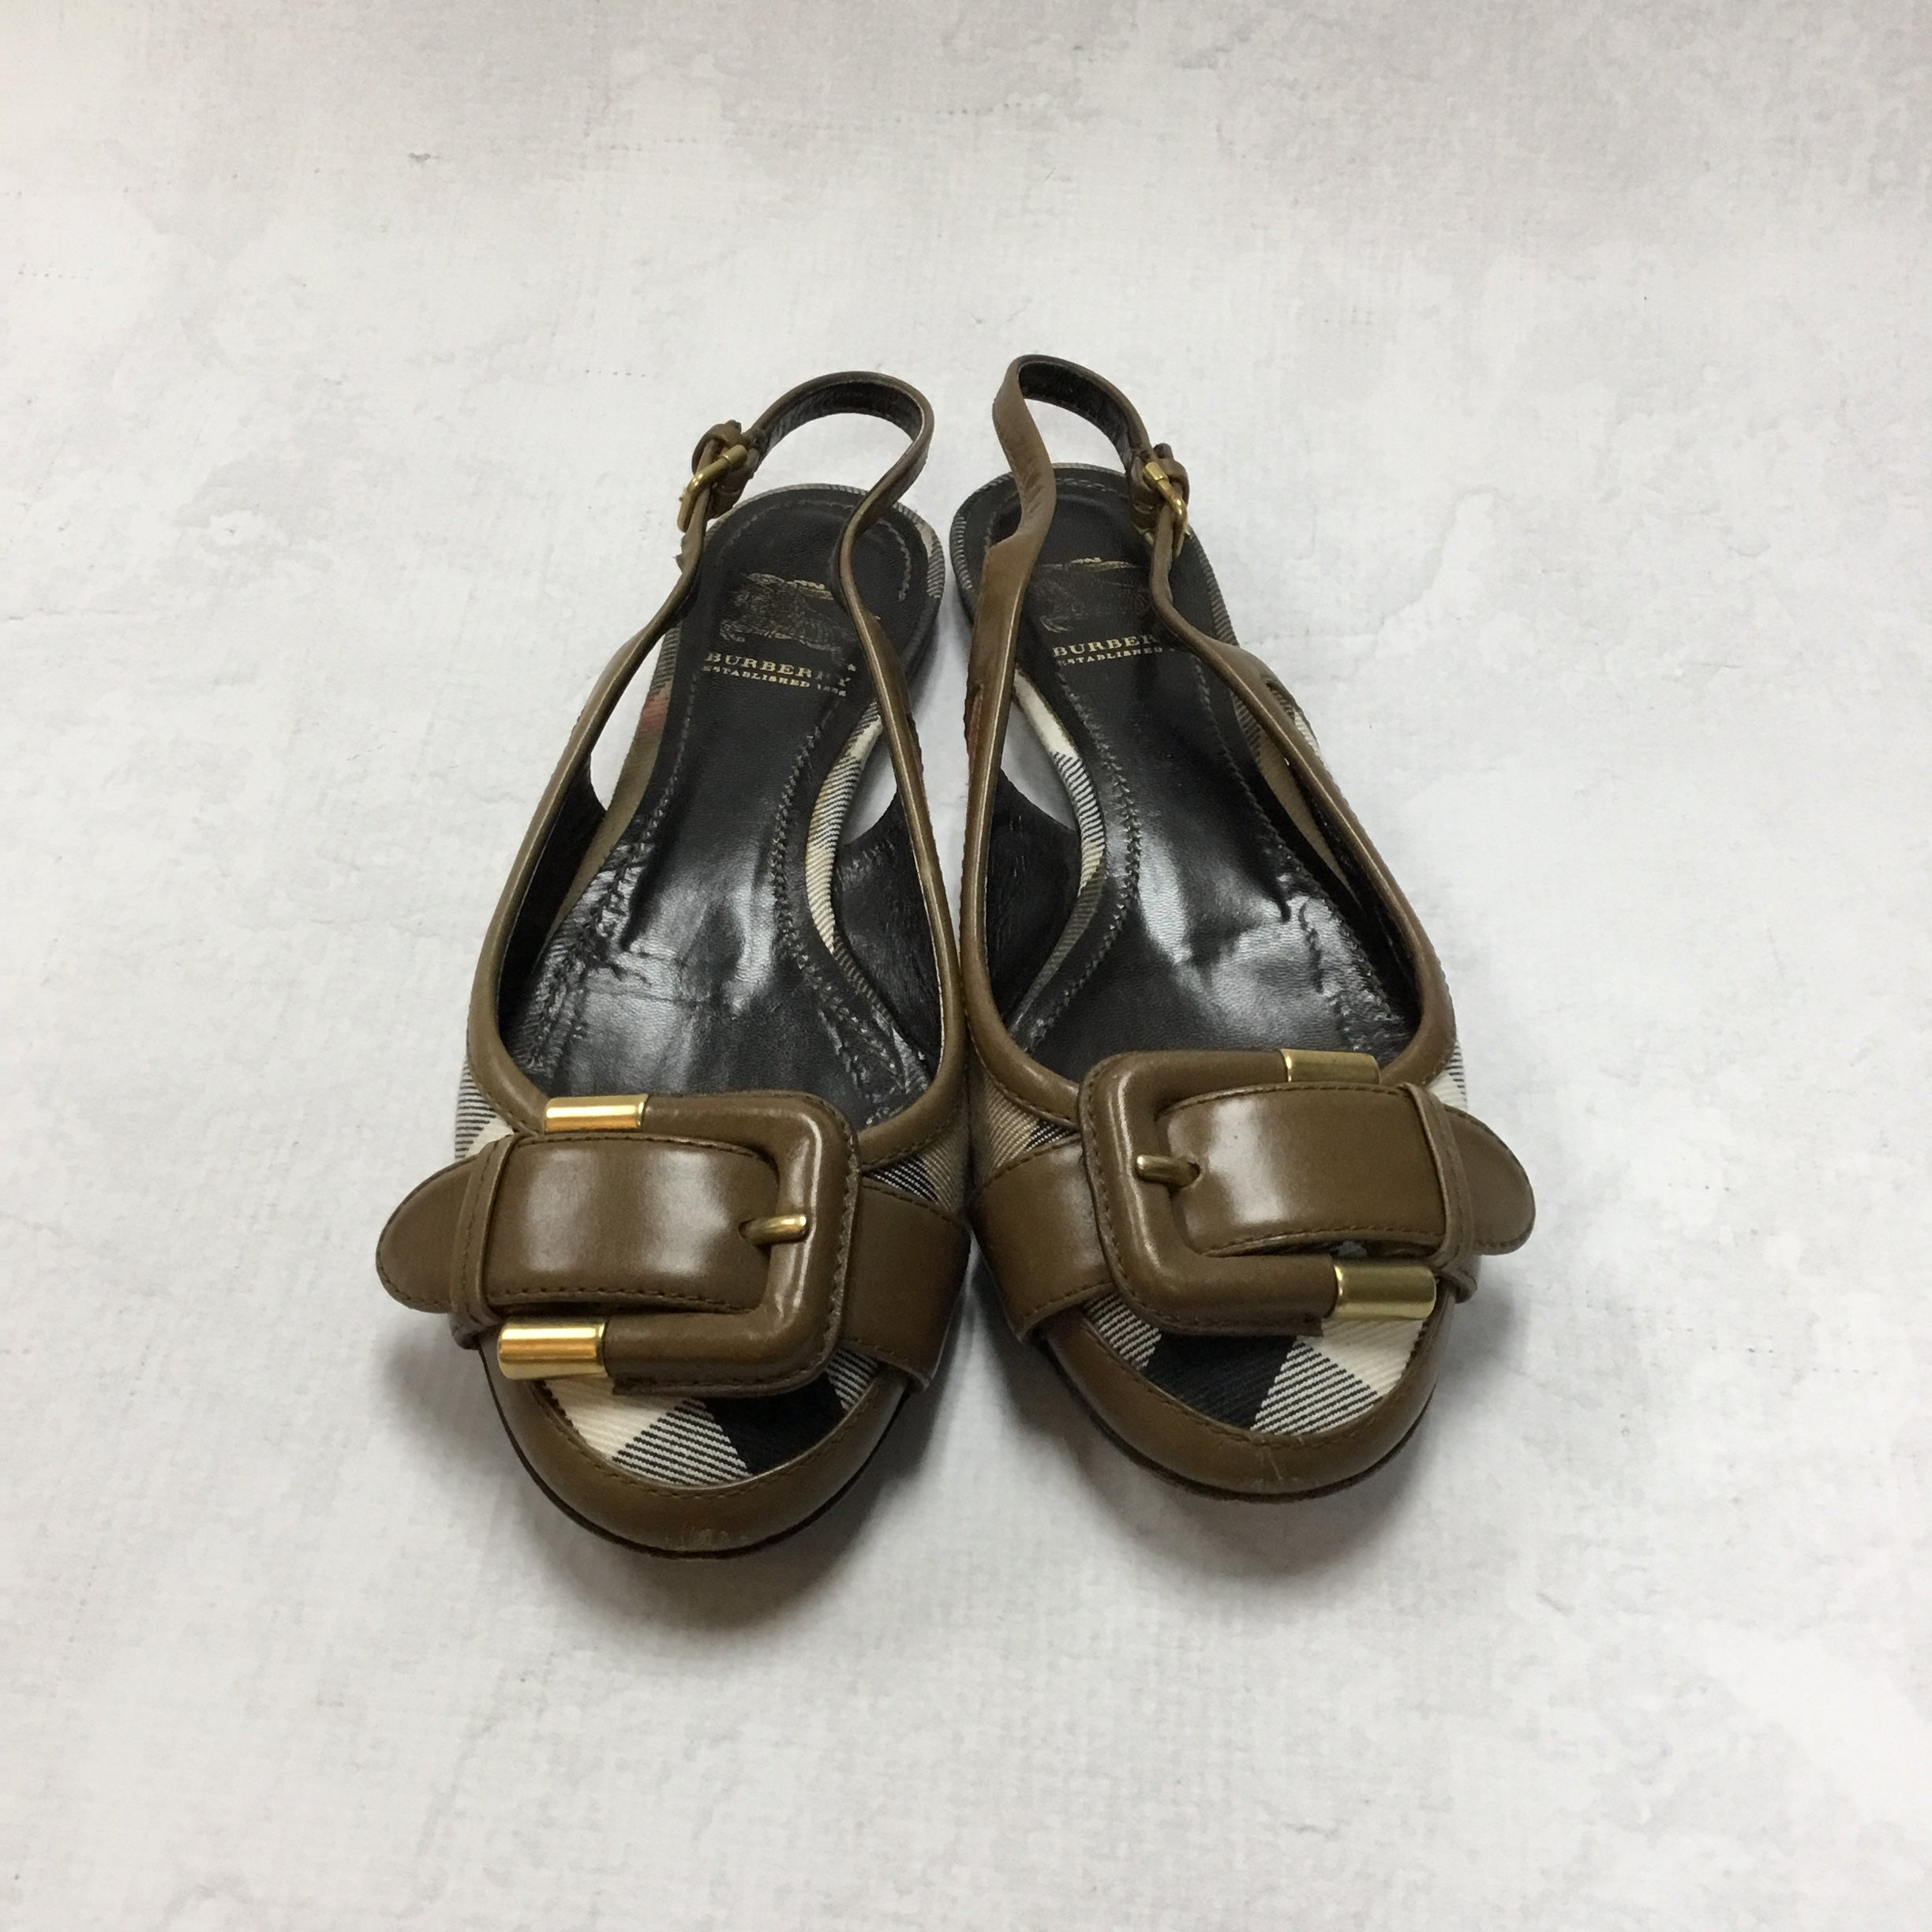 Primary Photo - BRAND: BURBERRY <BR>STYLE: SHOES FLATS <BR>COLOR: BURBERRY PLAID <BR>SIZE: 5 <BR>OTHER INFO: AS IS <BR>SKU: 194-194194-6793